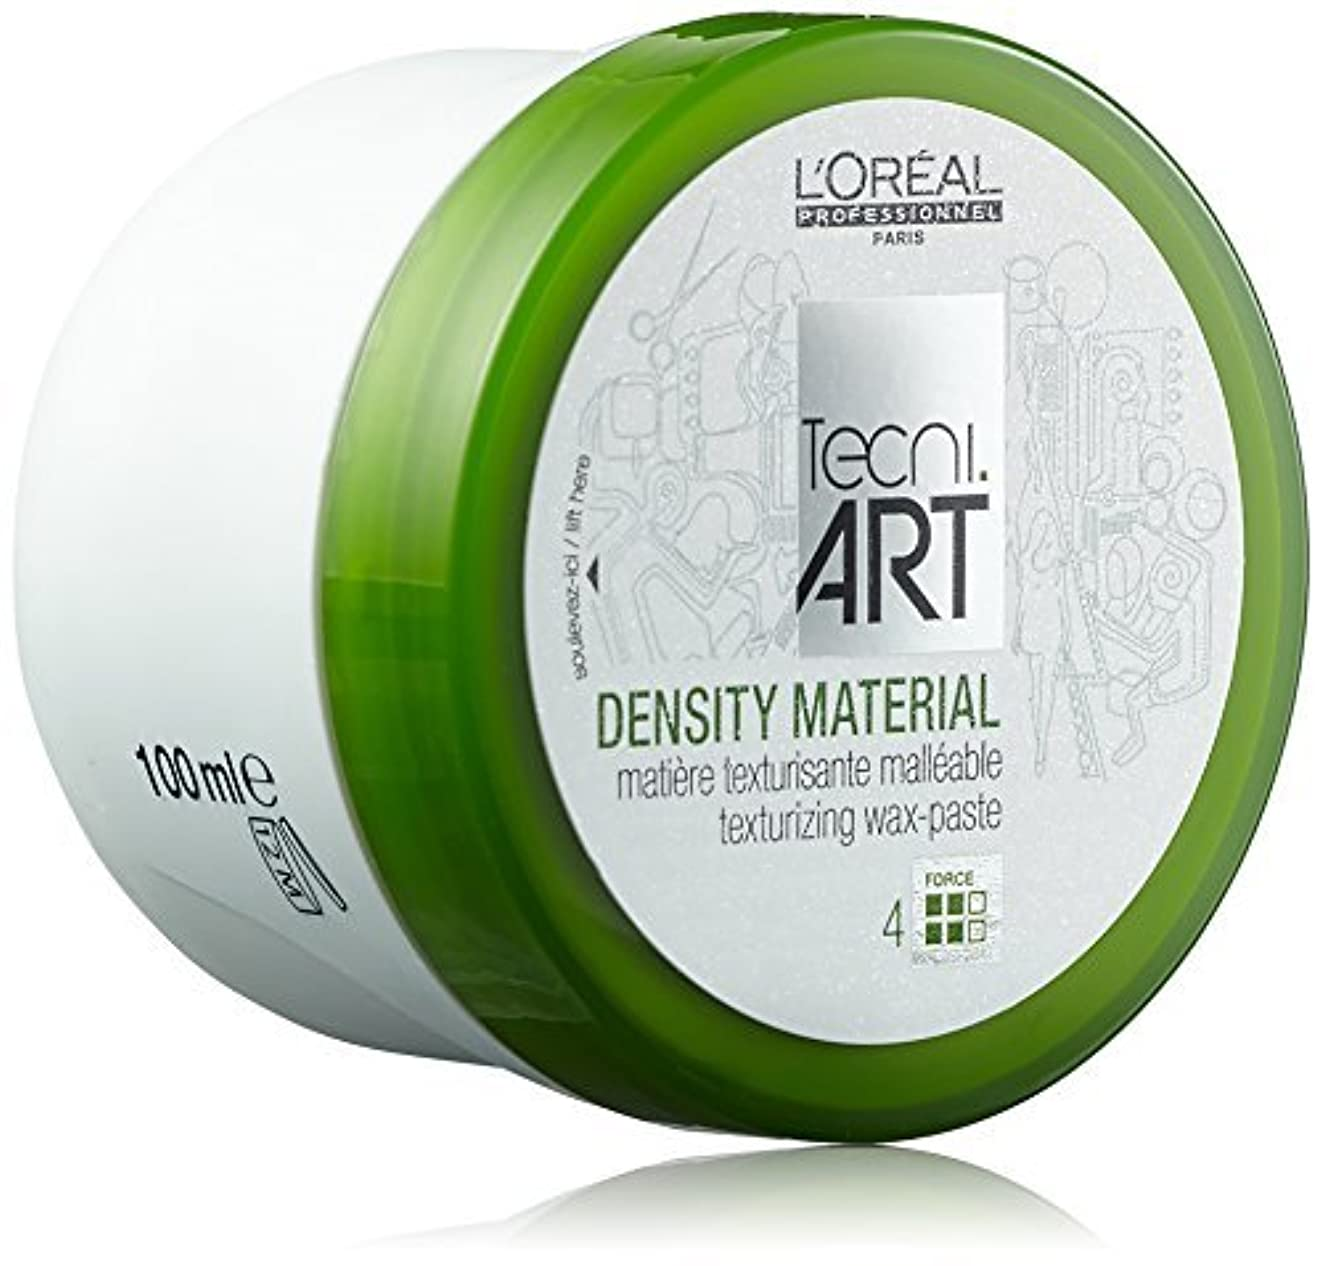 センサーメアリアンジョーンズ湿ったL'Oreal Professionnel Tecni.Art Play Ball Density Material 100ml/3.4oz by L'oreal [並行輸入品]